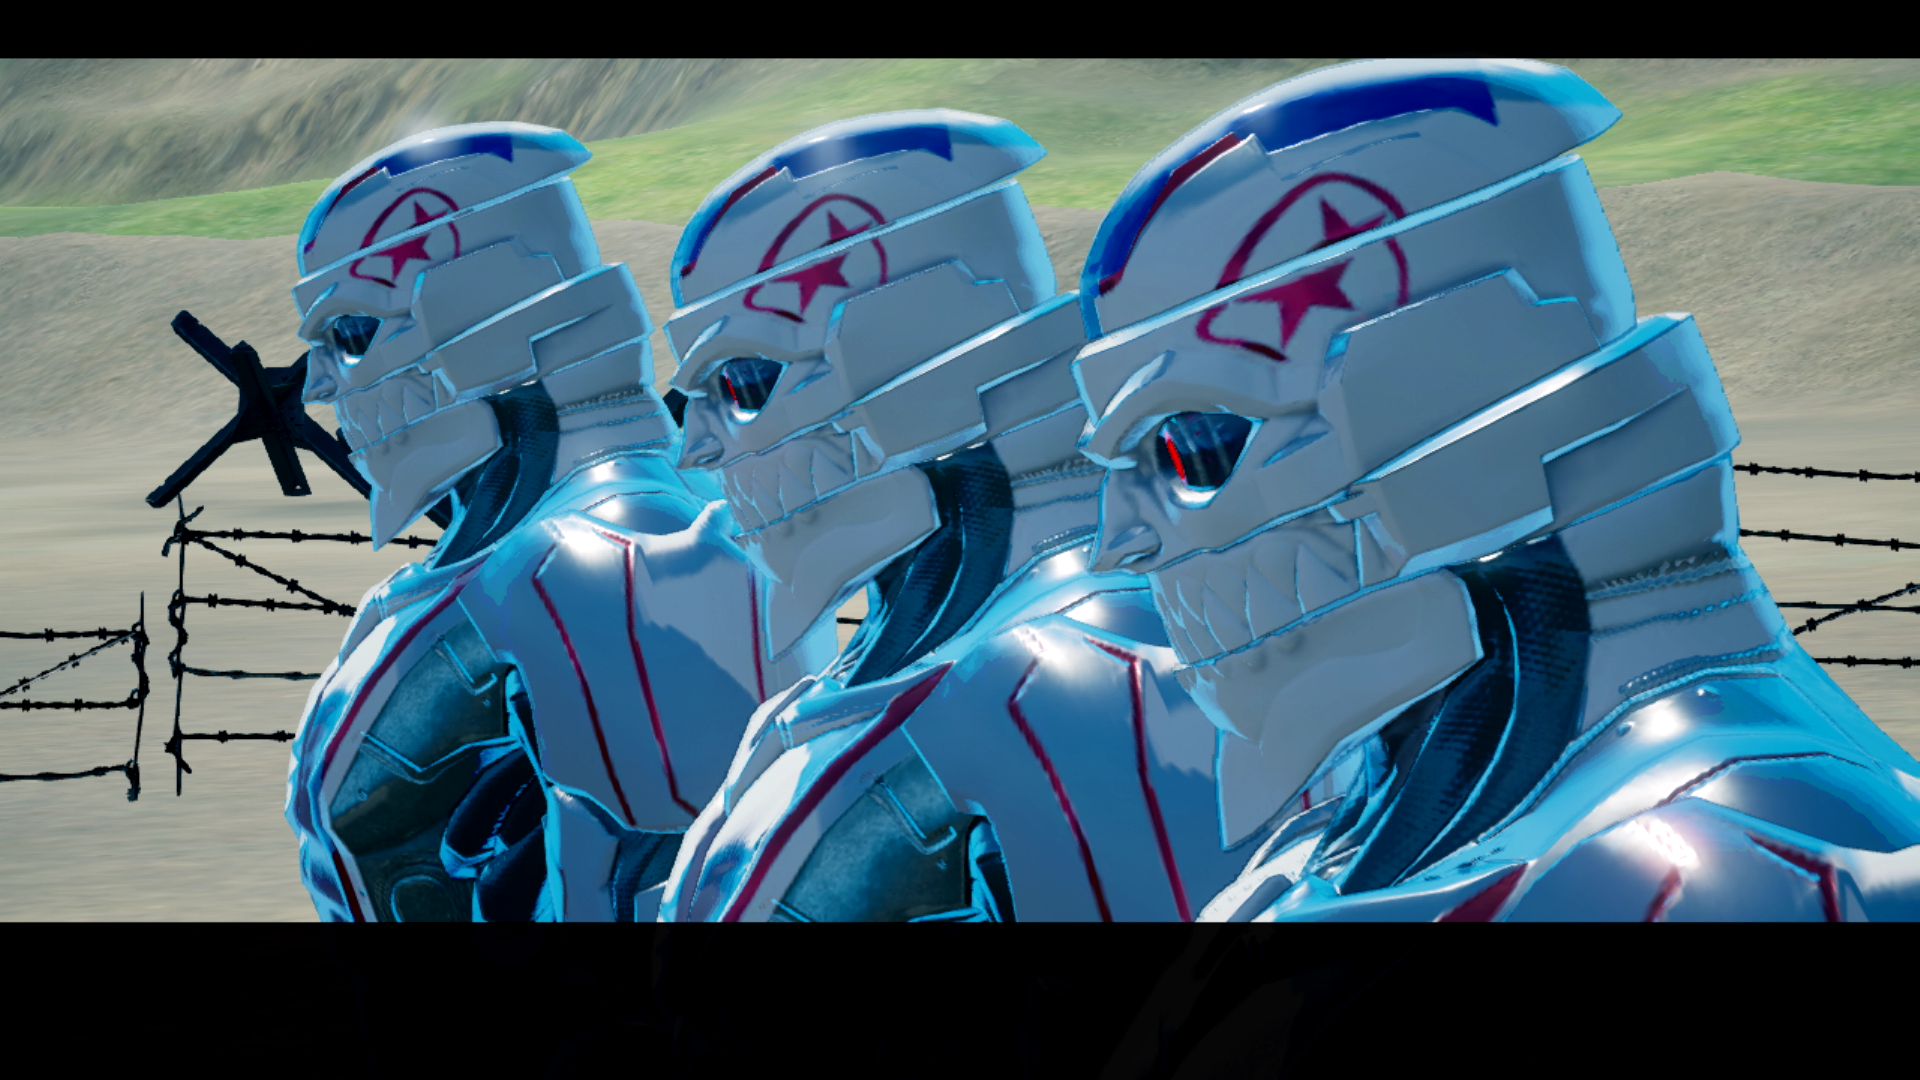 An army of Destroyman robots from No More Heroes 3